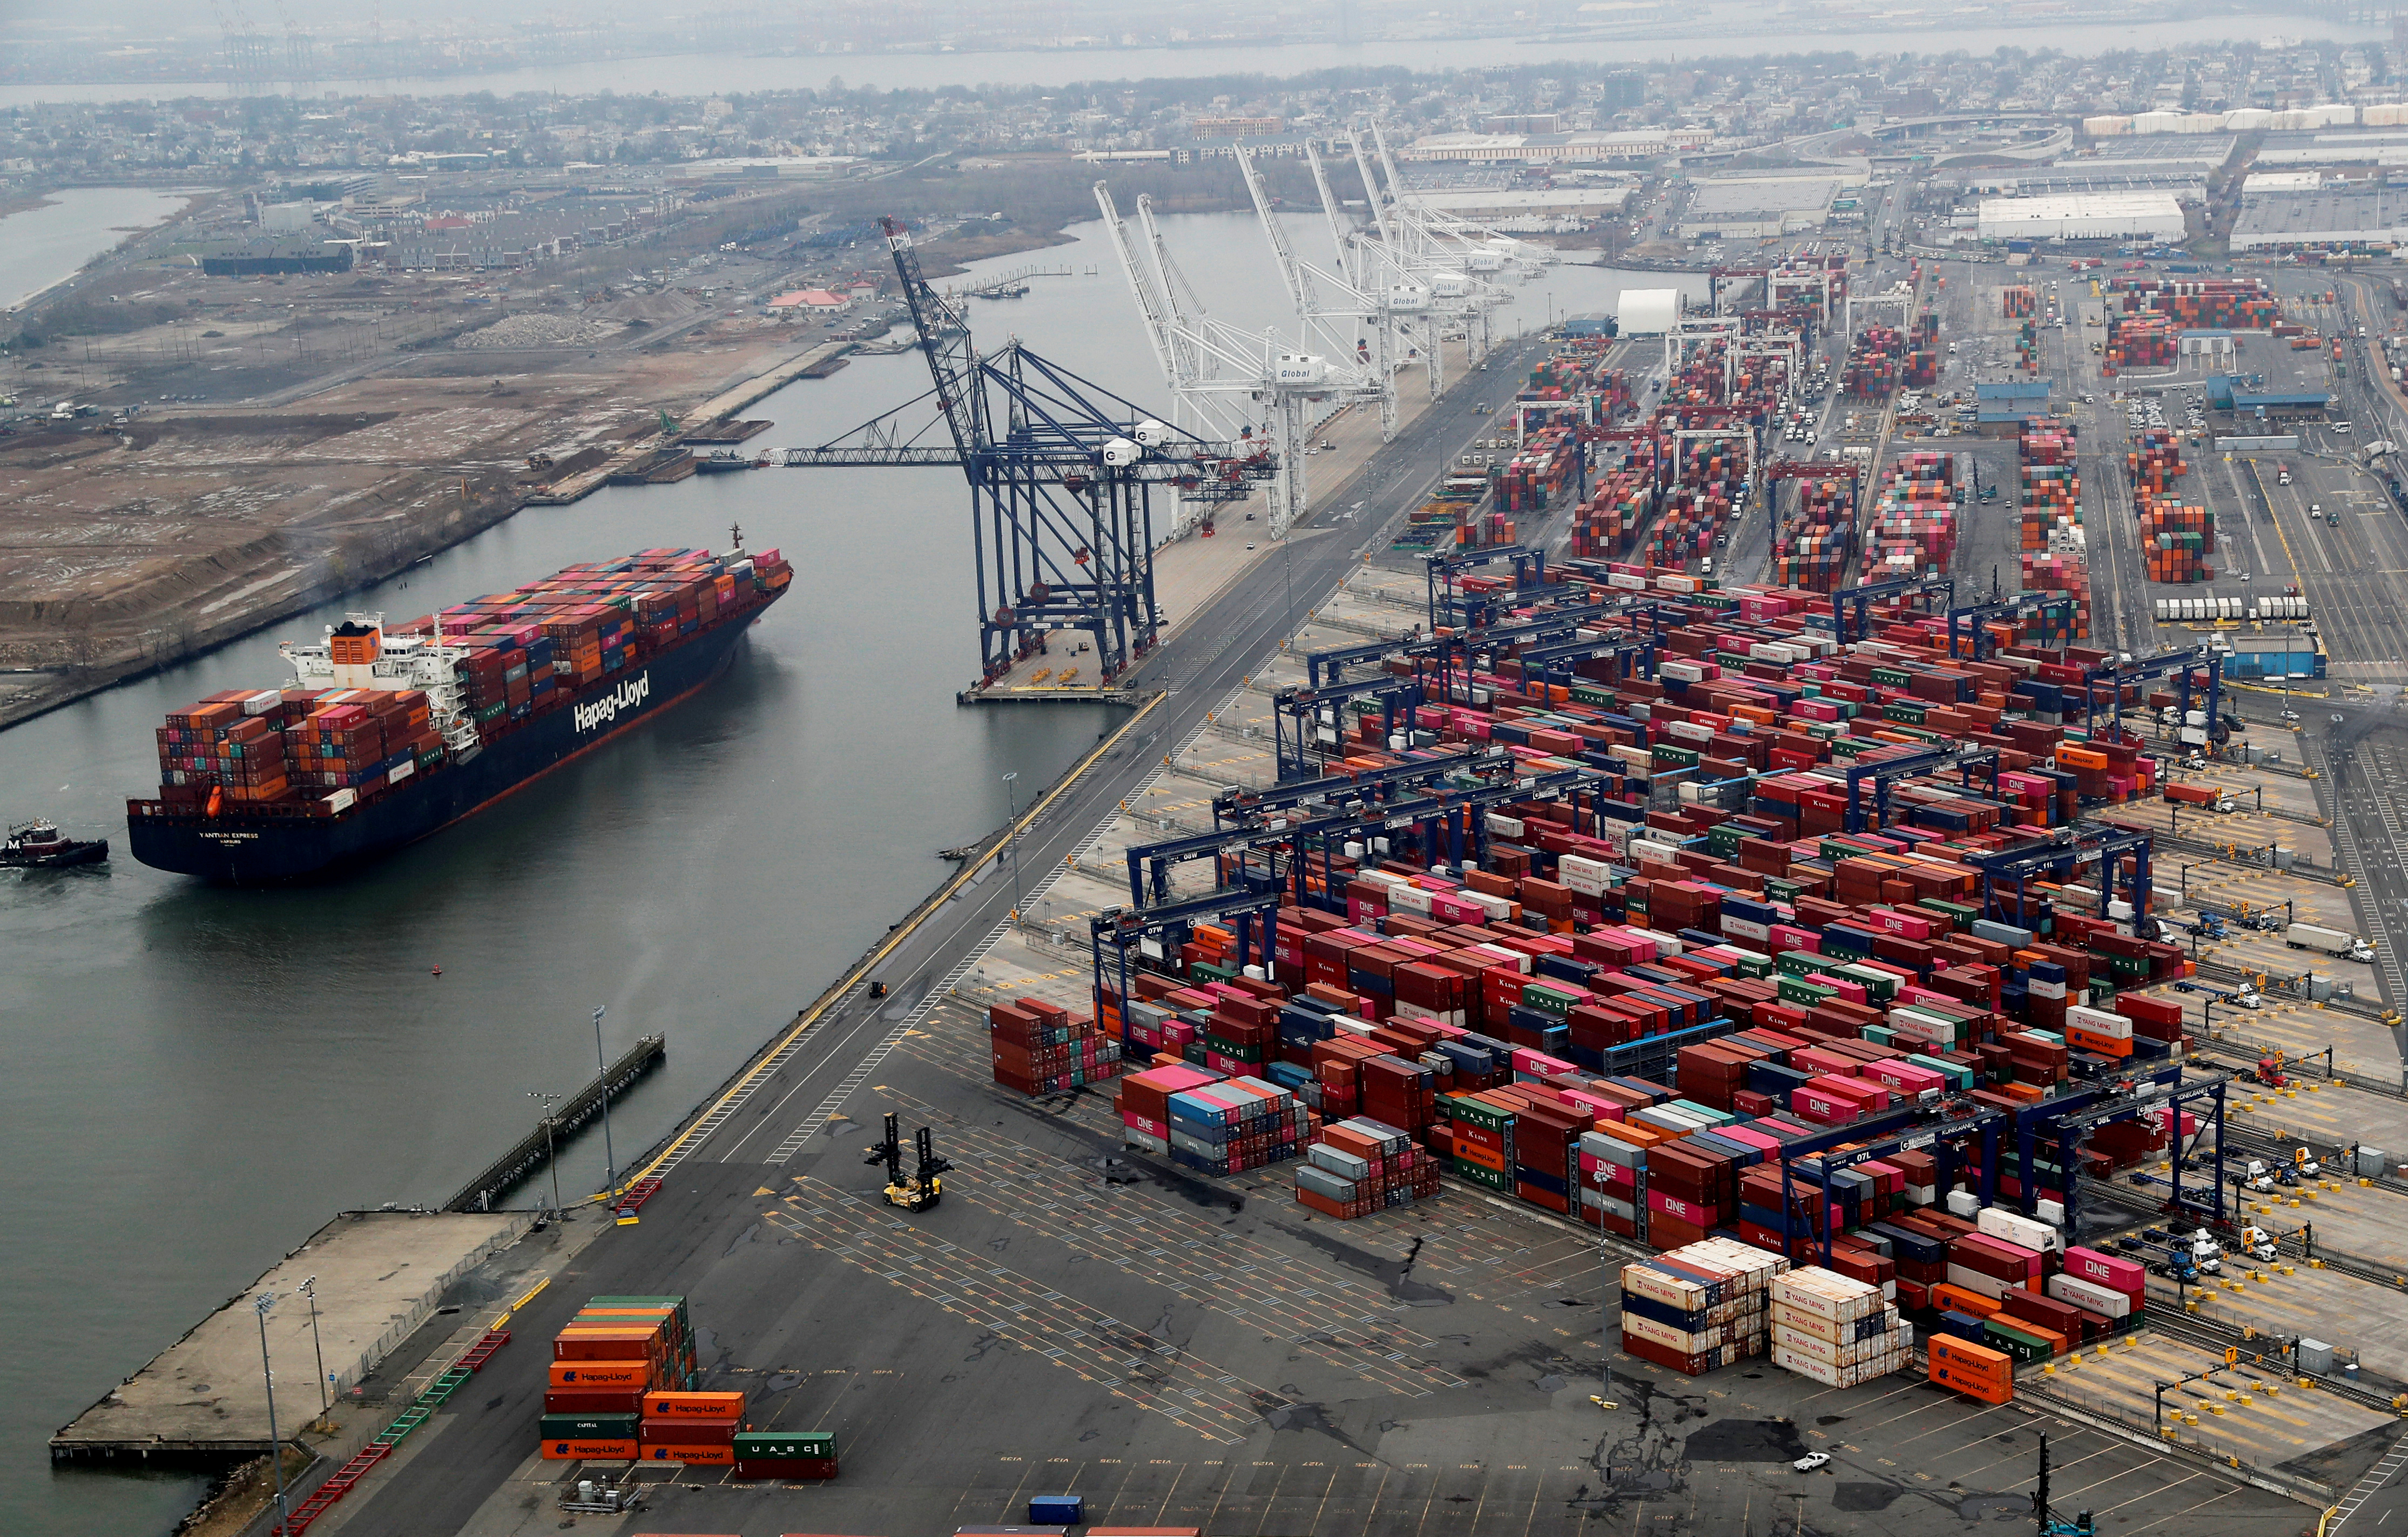 A container ship is seen as hundreds of shipping containers are seen stacked at a pier at the Port of New York and New Jersey in Elizabeth, New Jersey, U.S., March 30, 2020. REUTERS/Mike Segar